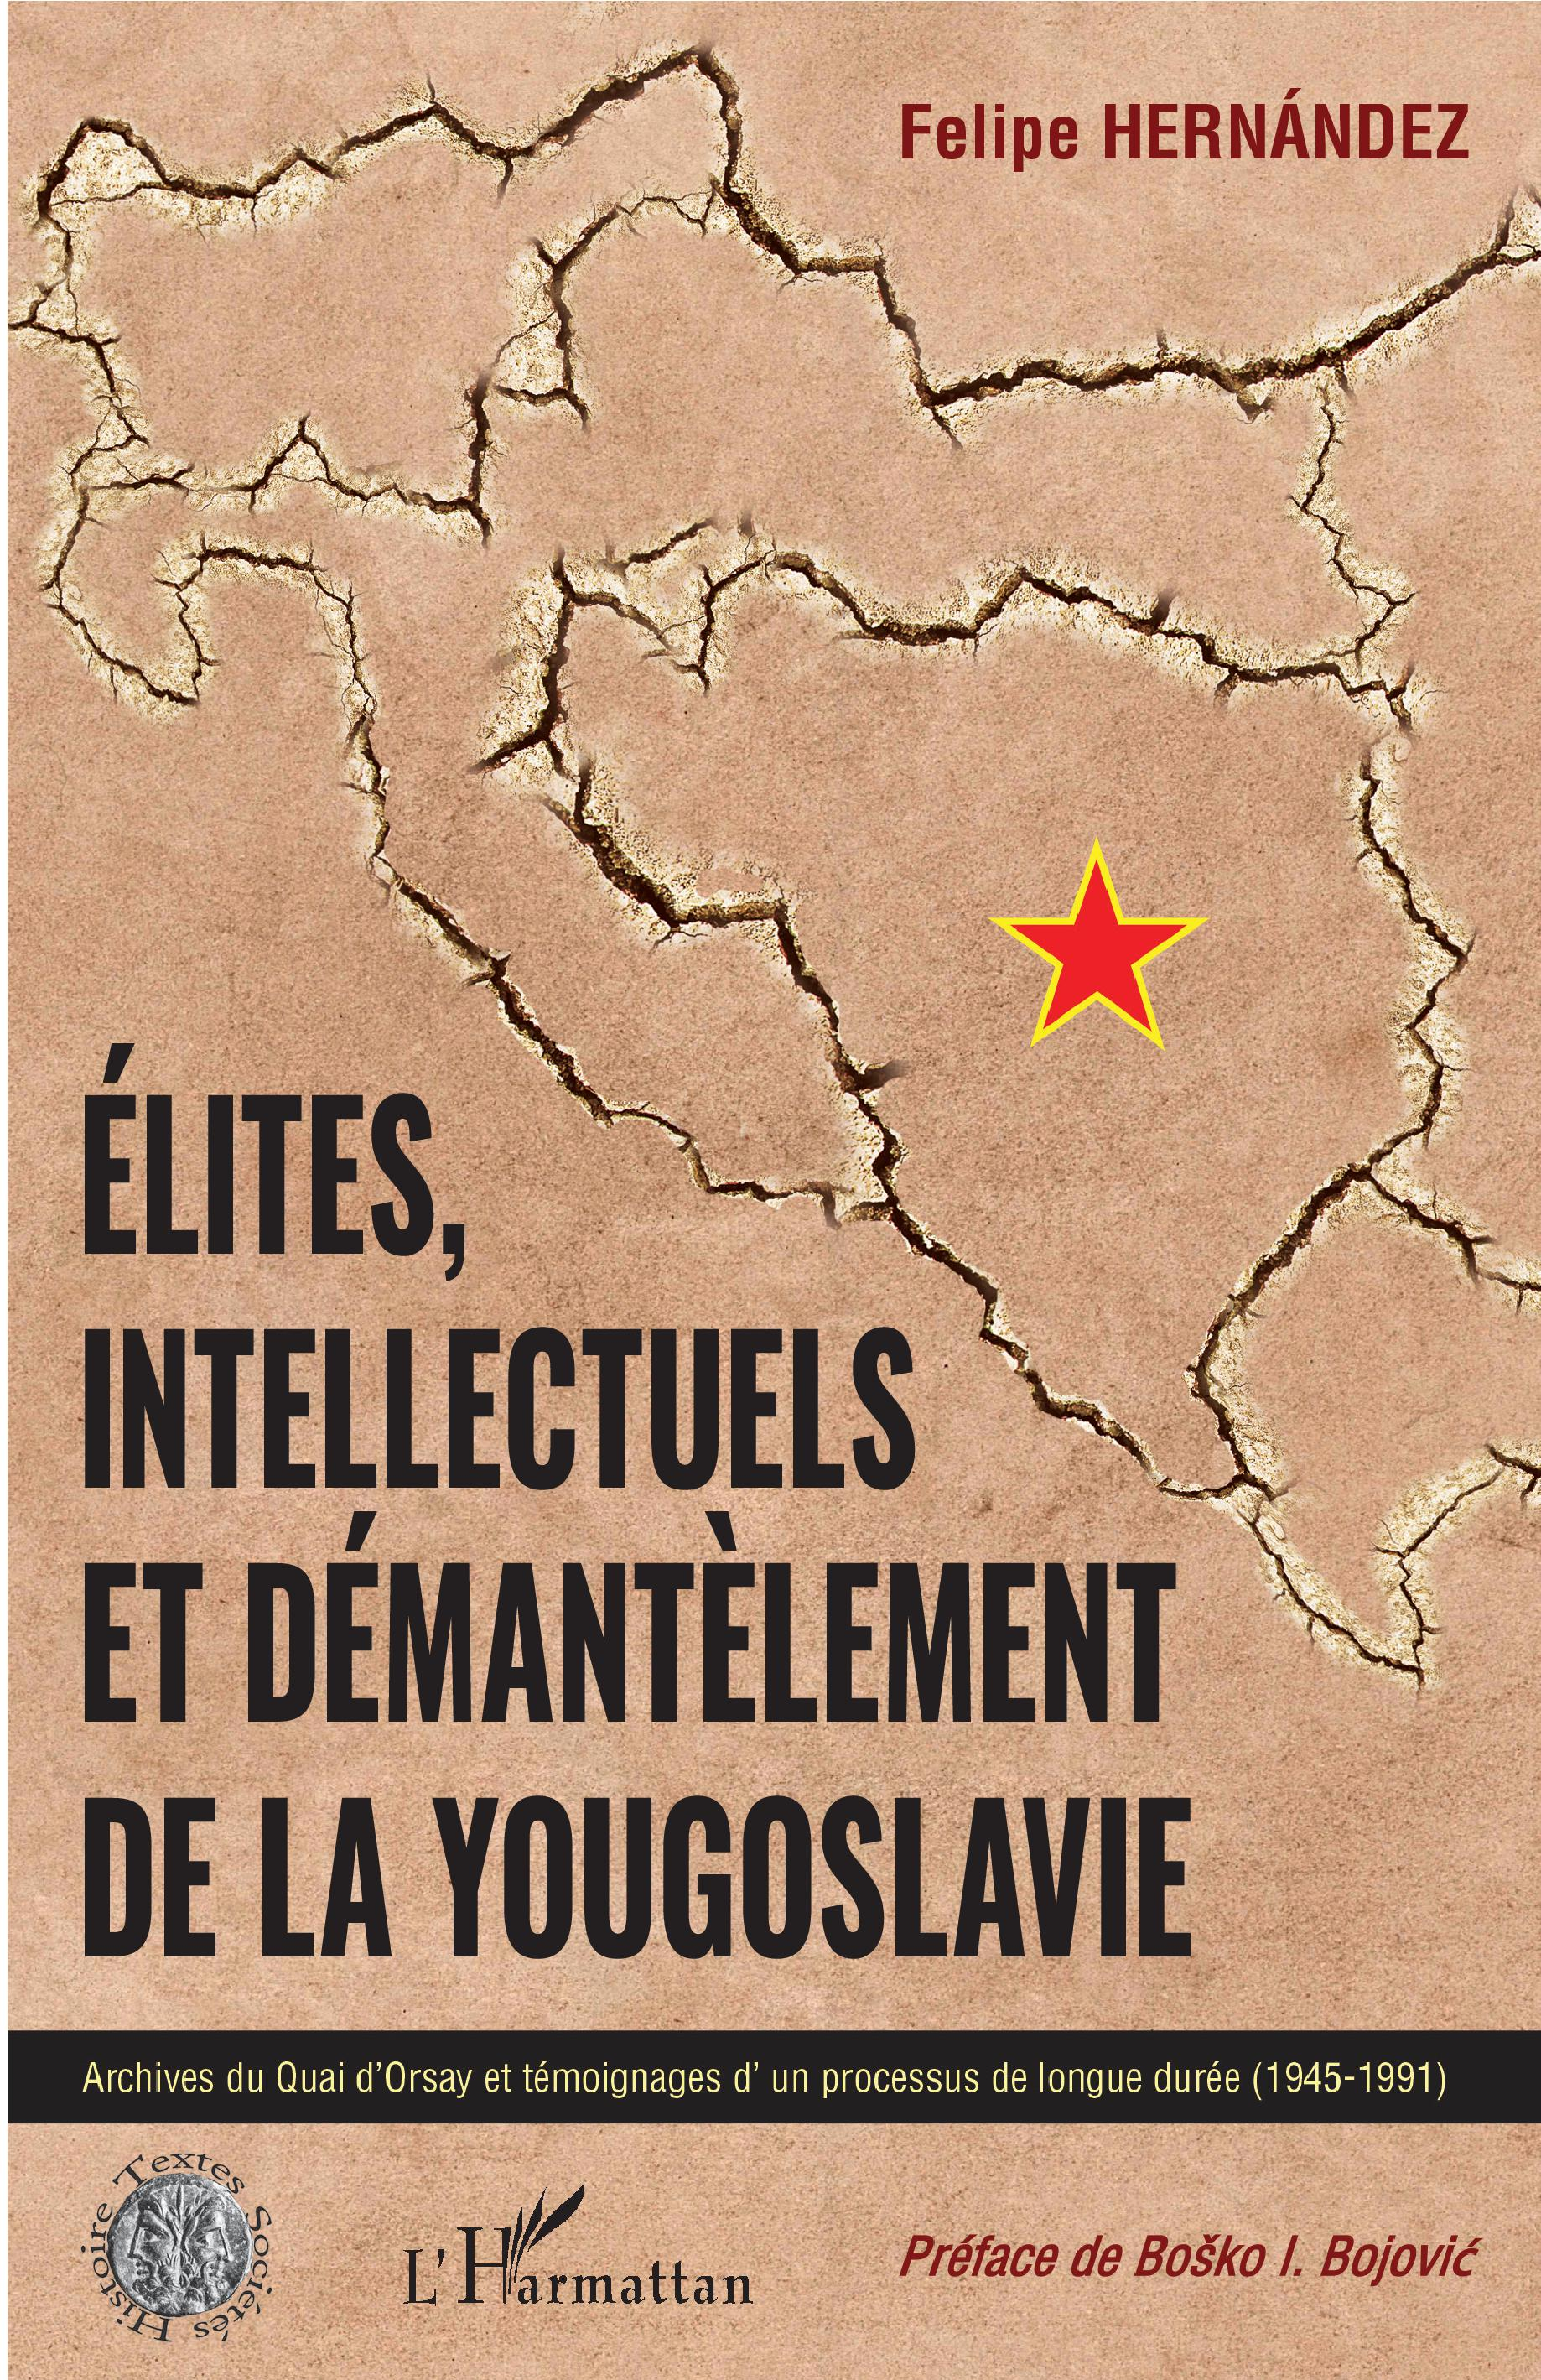 Elites, intellectuels et démantèlement de la Yougoslavie